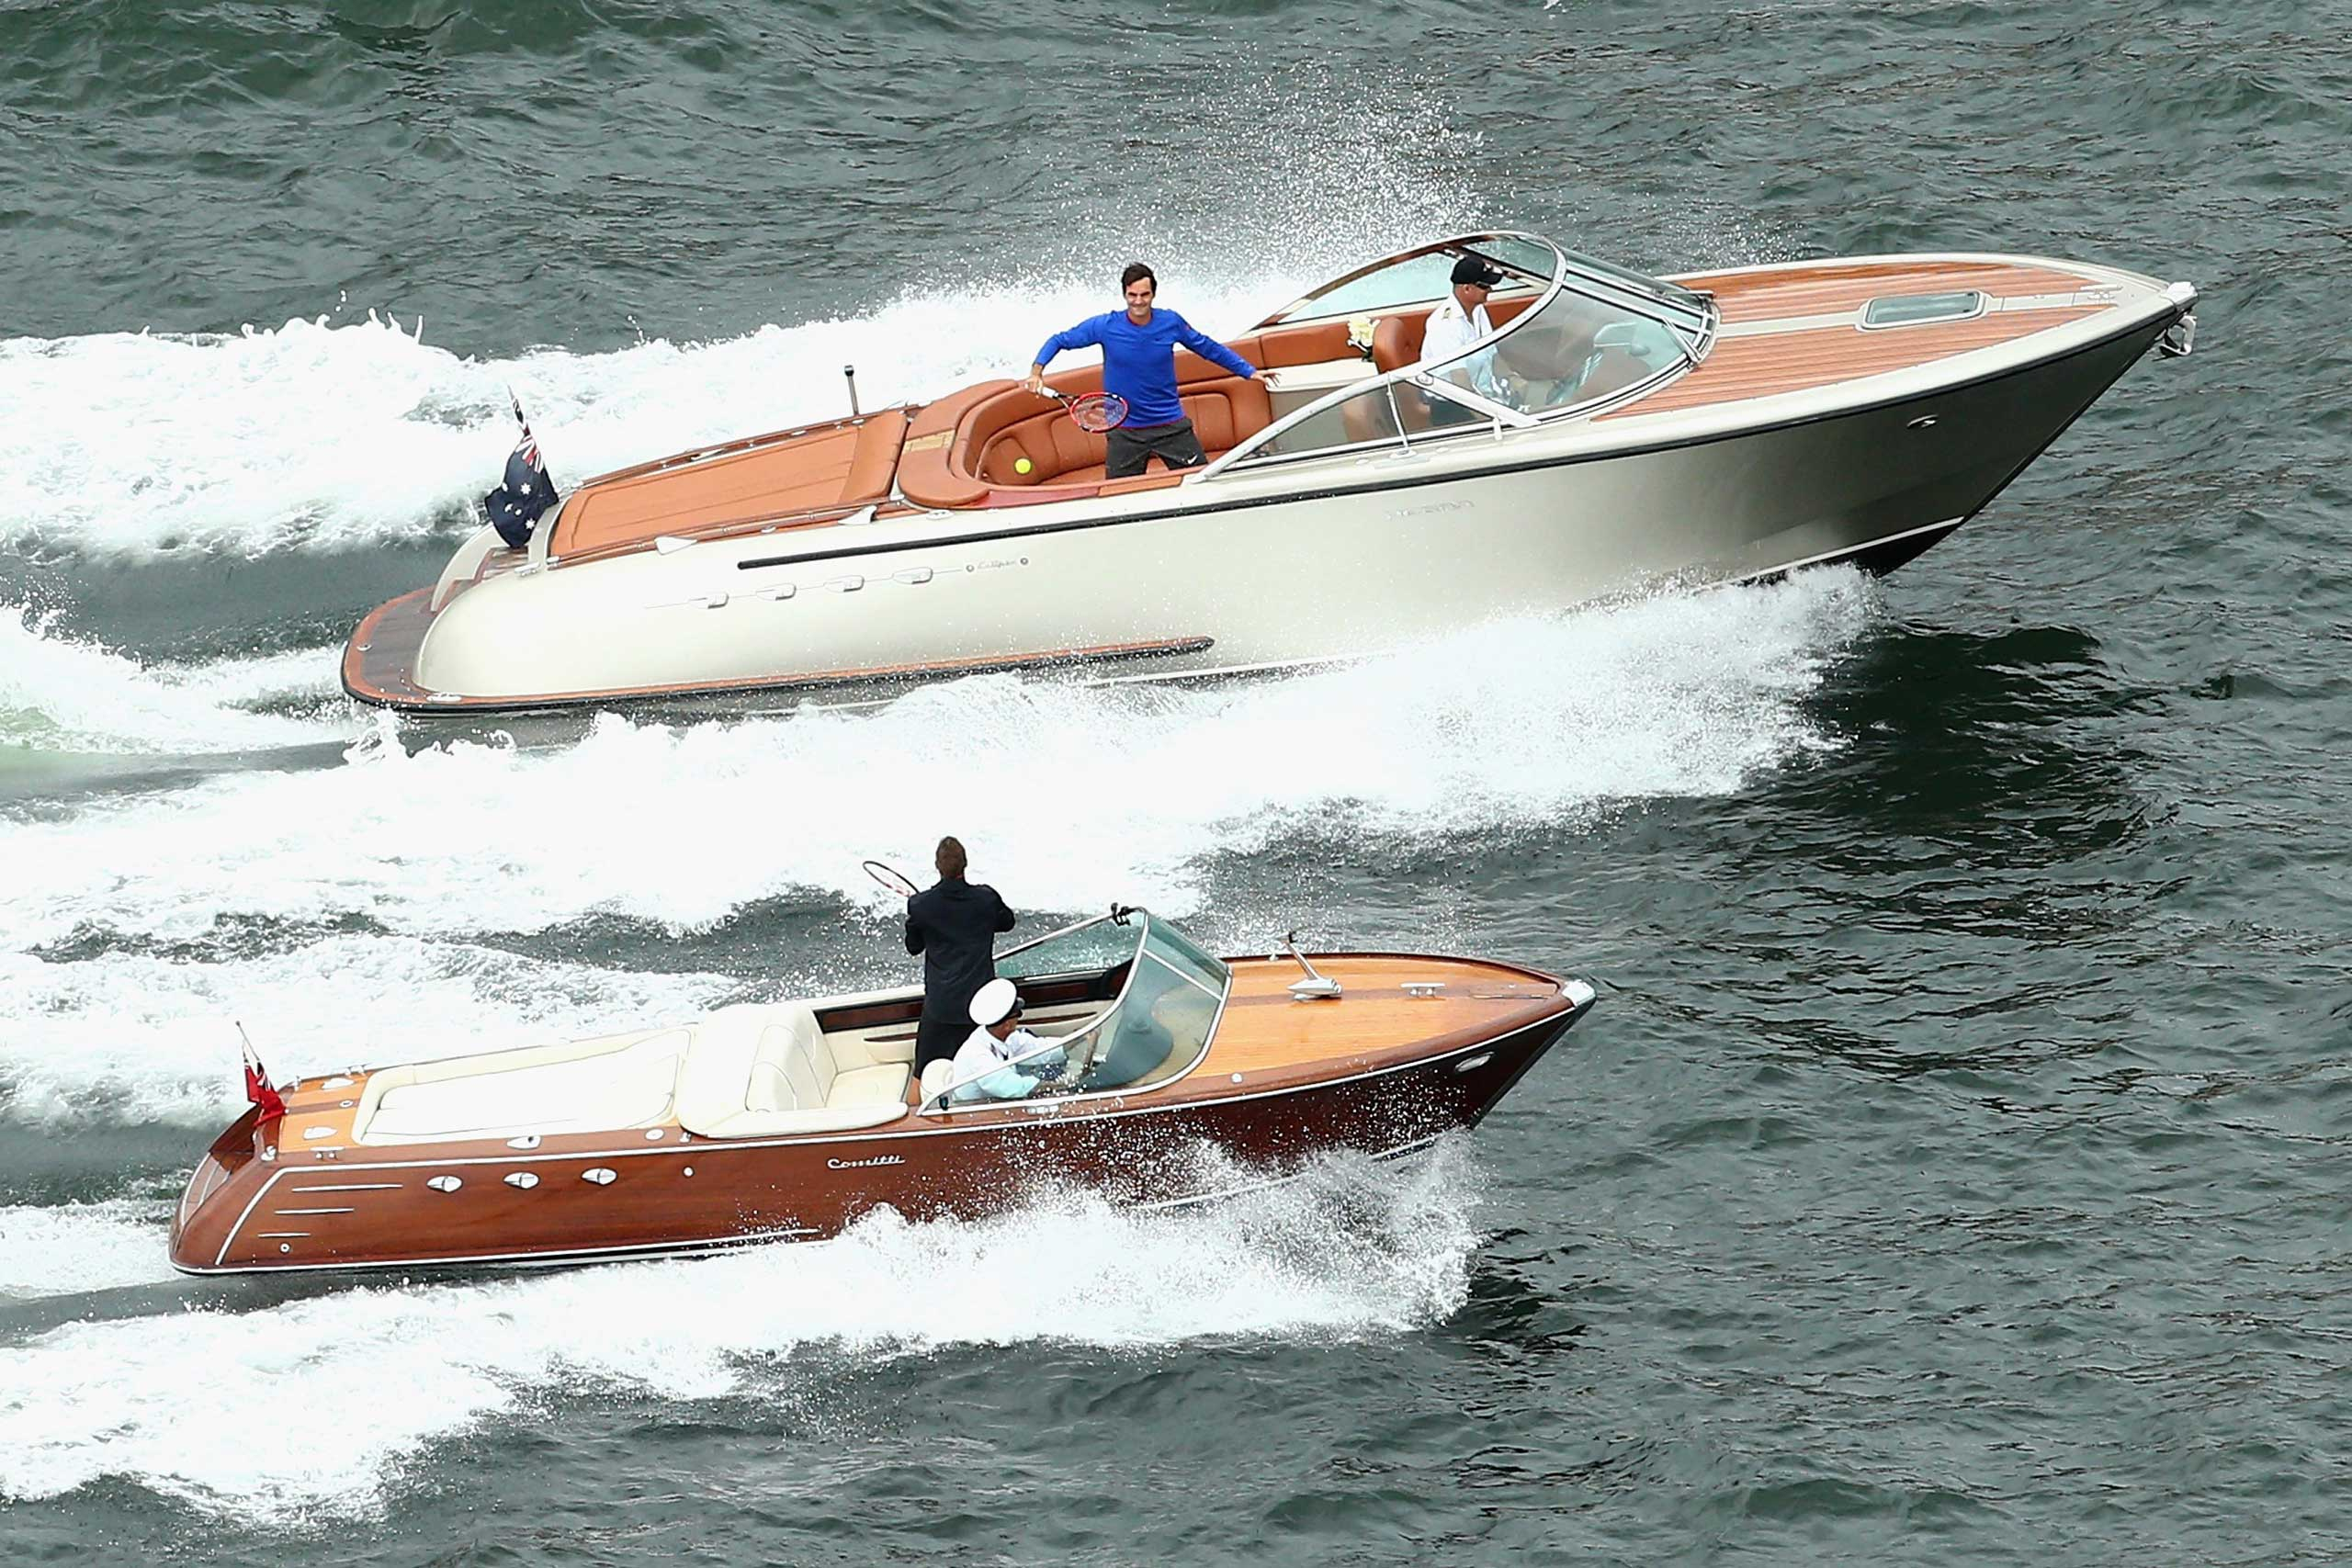 Roger Federer of Switzerland plays tennis with Lleyton Hewitt of Australia between speedboats on Sydney Harbour ahead of their Fast 4 Exhibition match on Jan. 12, 2015 in Sydney, Australia.